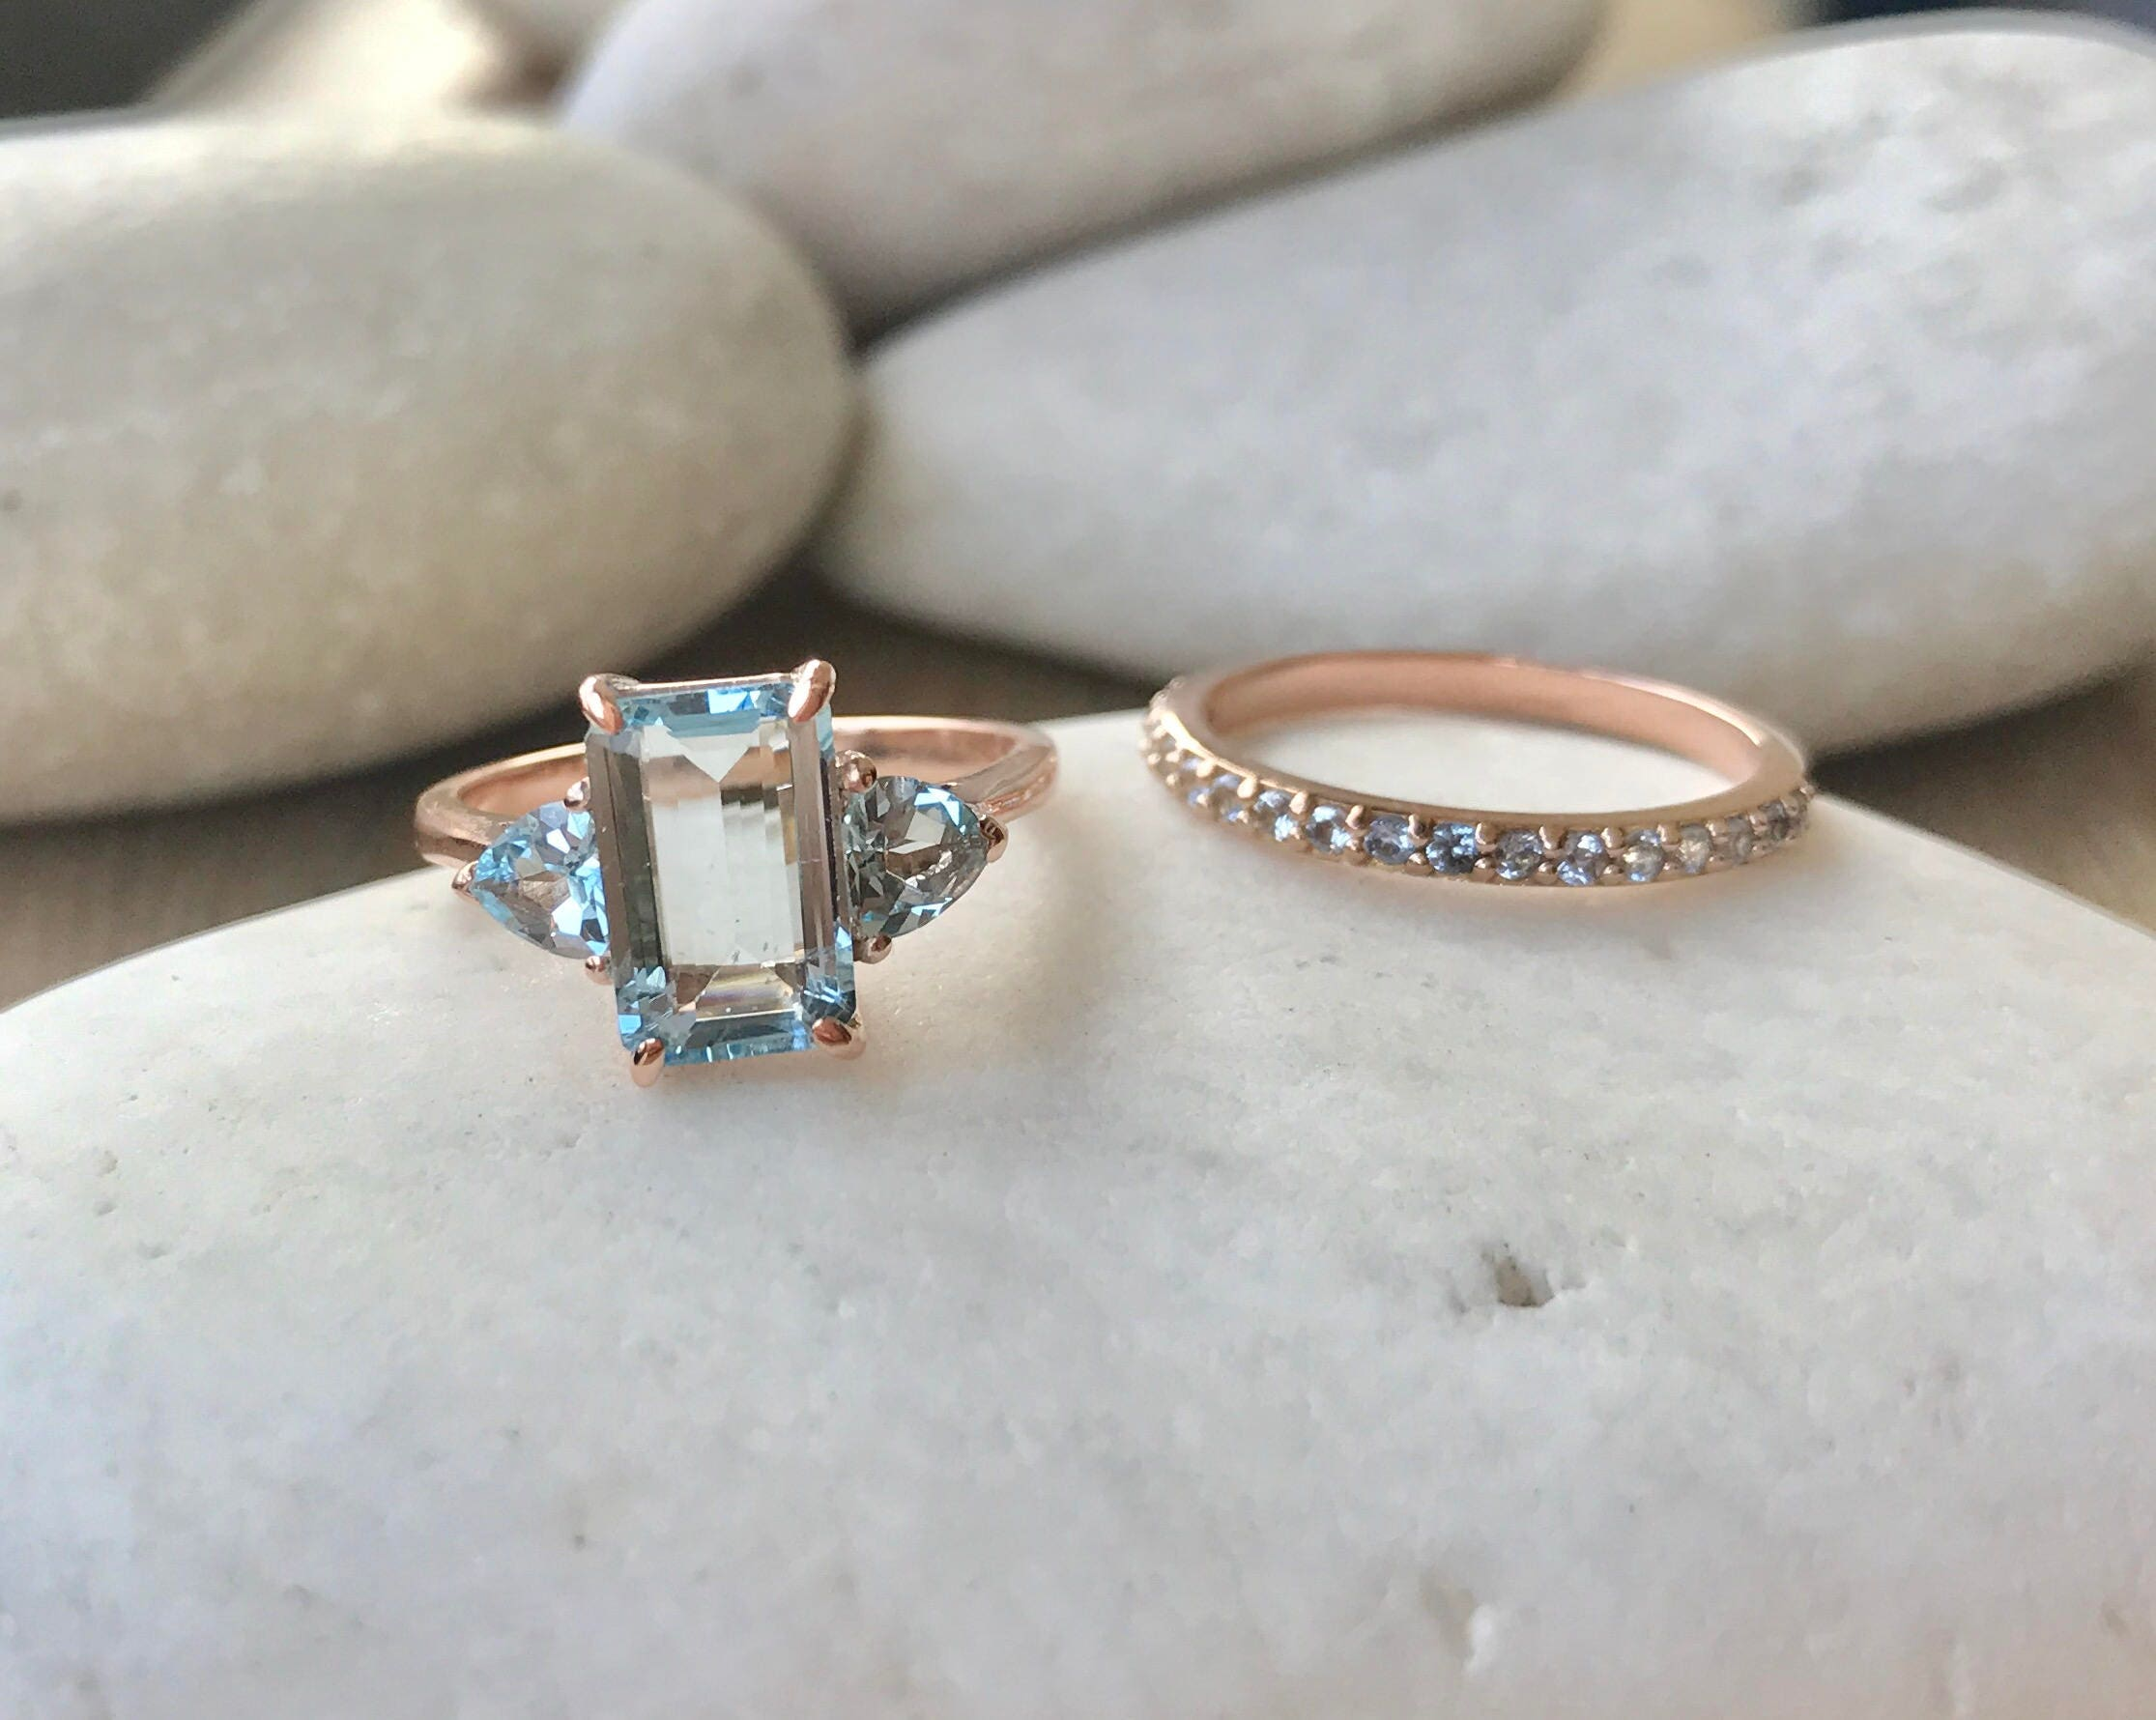 promise gold ring aqua aquamarine and rings in engagement gcbfssq halo gemstone diamond new cirque white wedding vintage marine